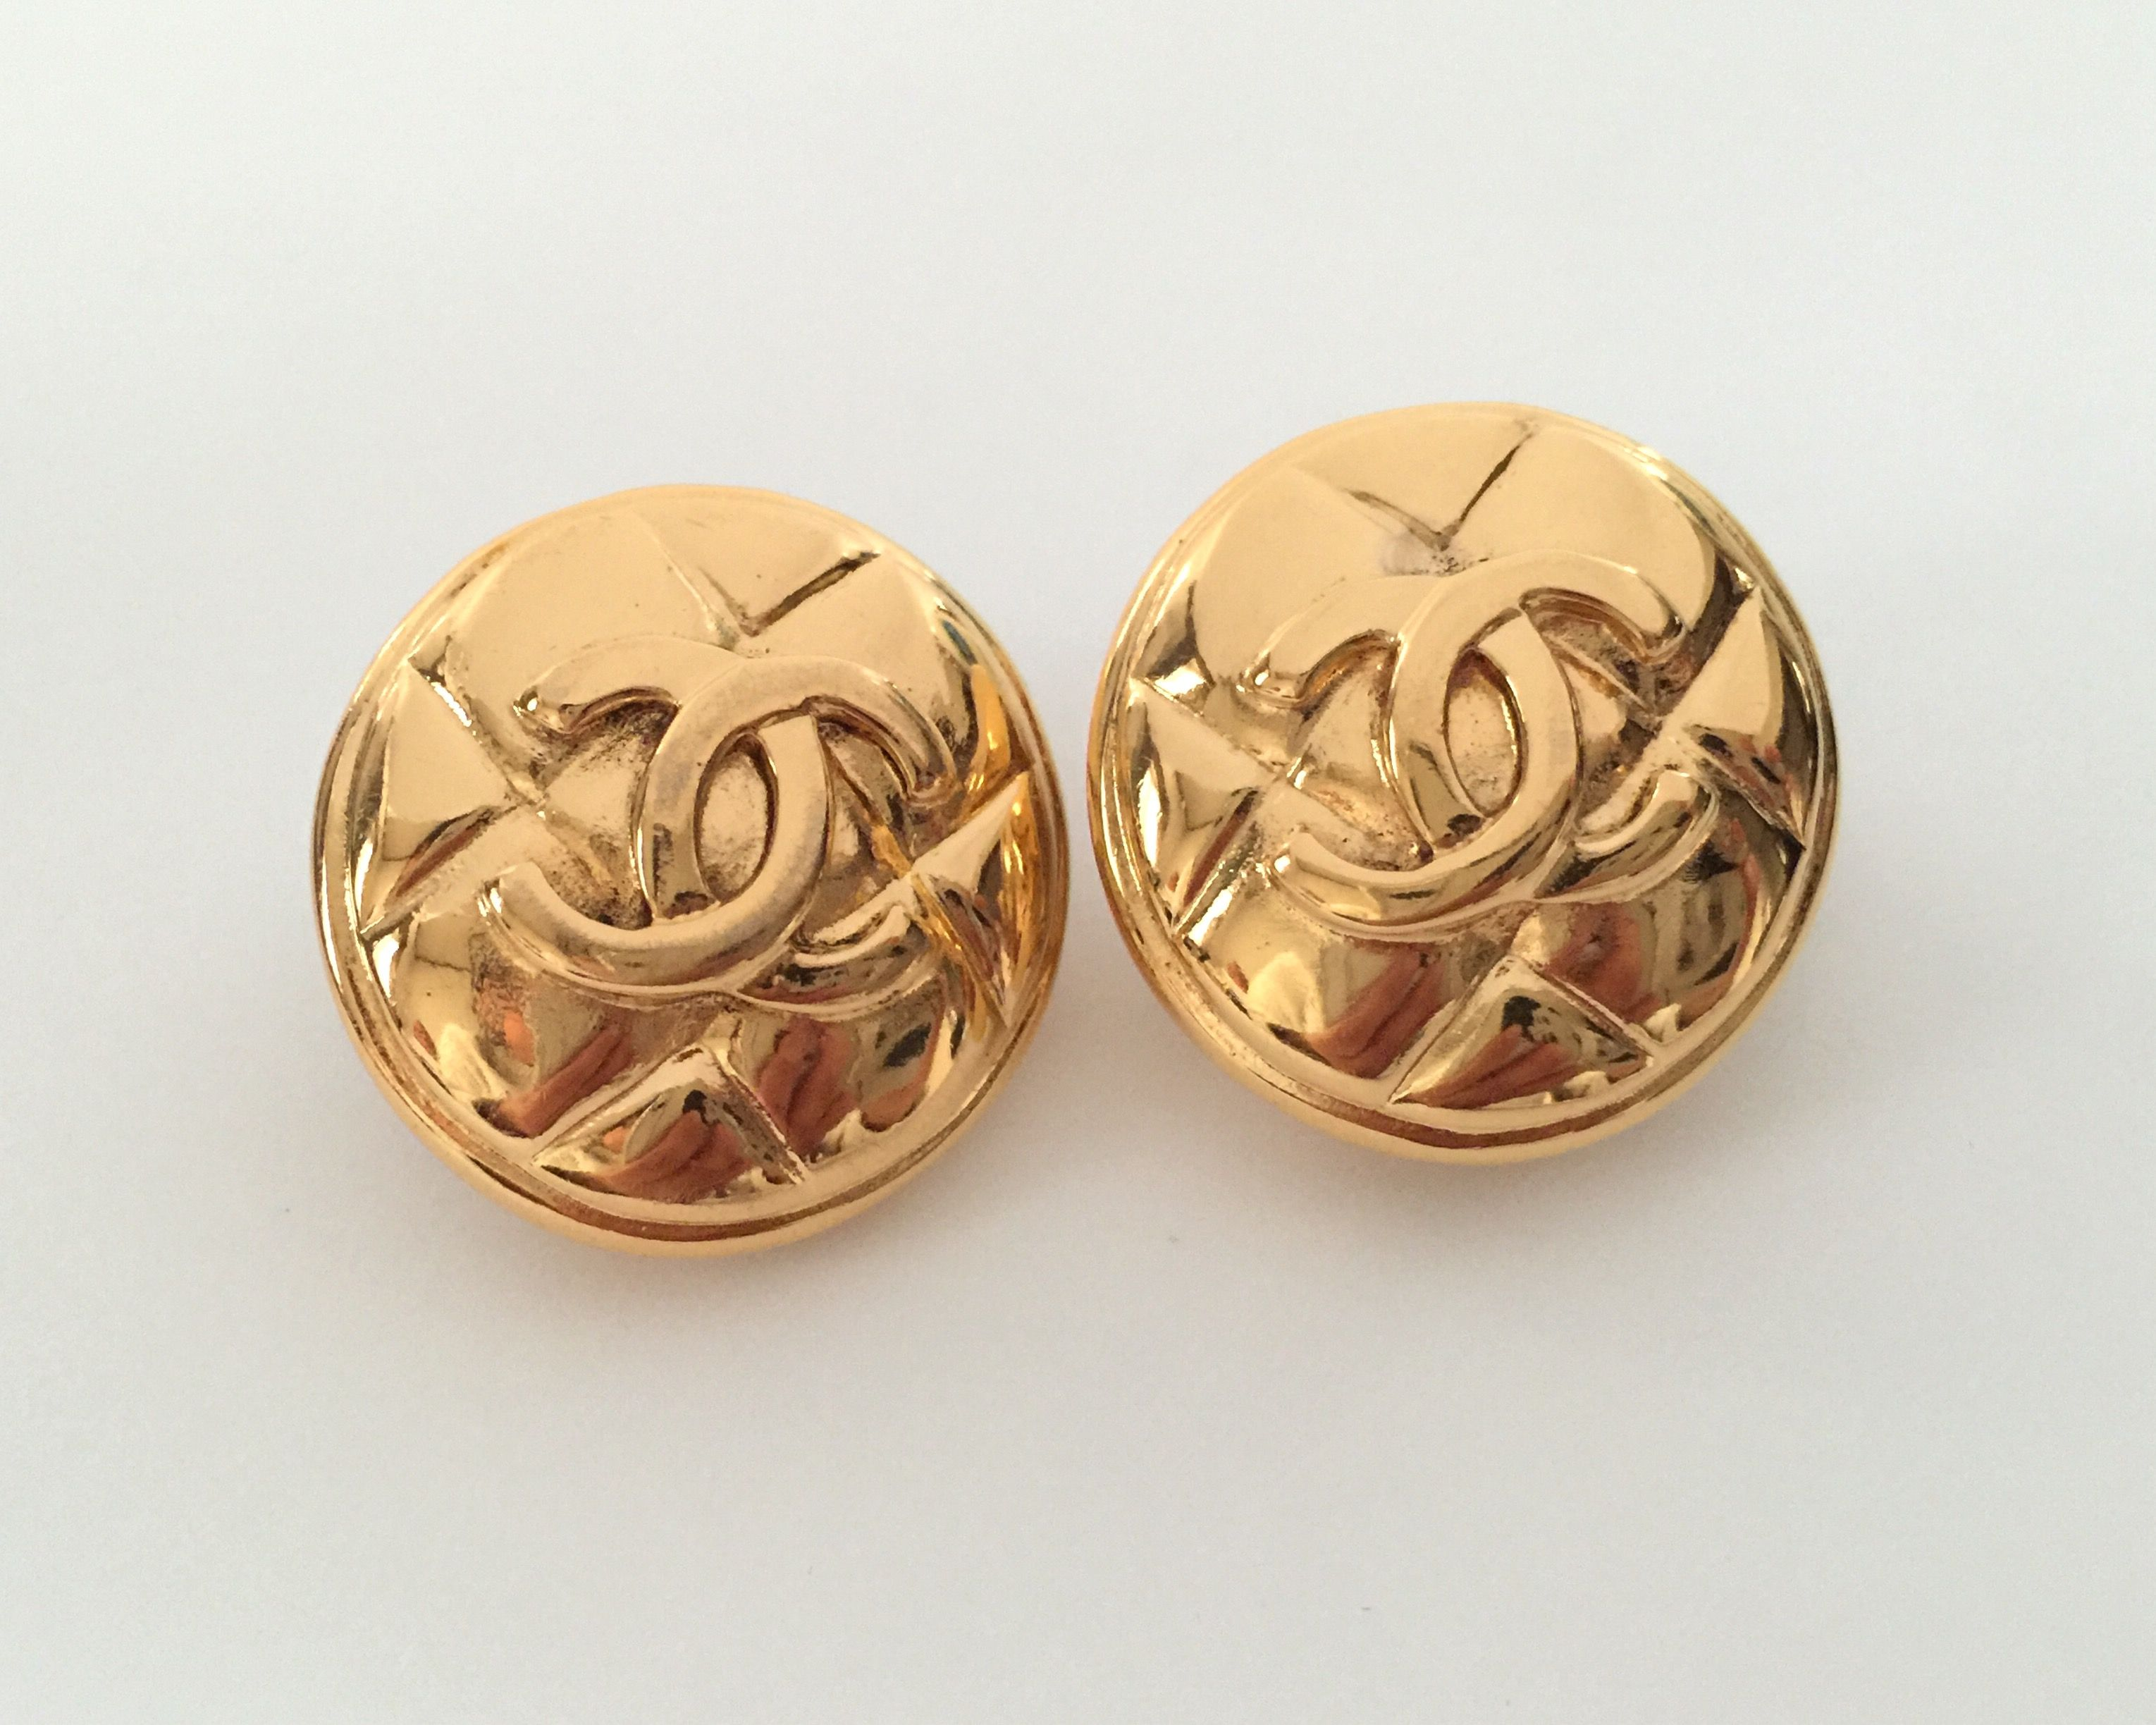 Authentic Vintage Chanel Cc Logo Quilted Medallion Earrings Vintage Chanel Vintage Chanel Jewelry Chanel Jewelry